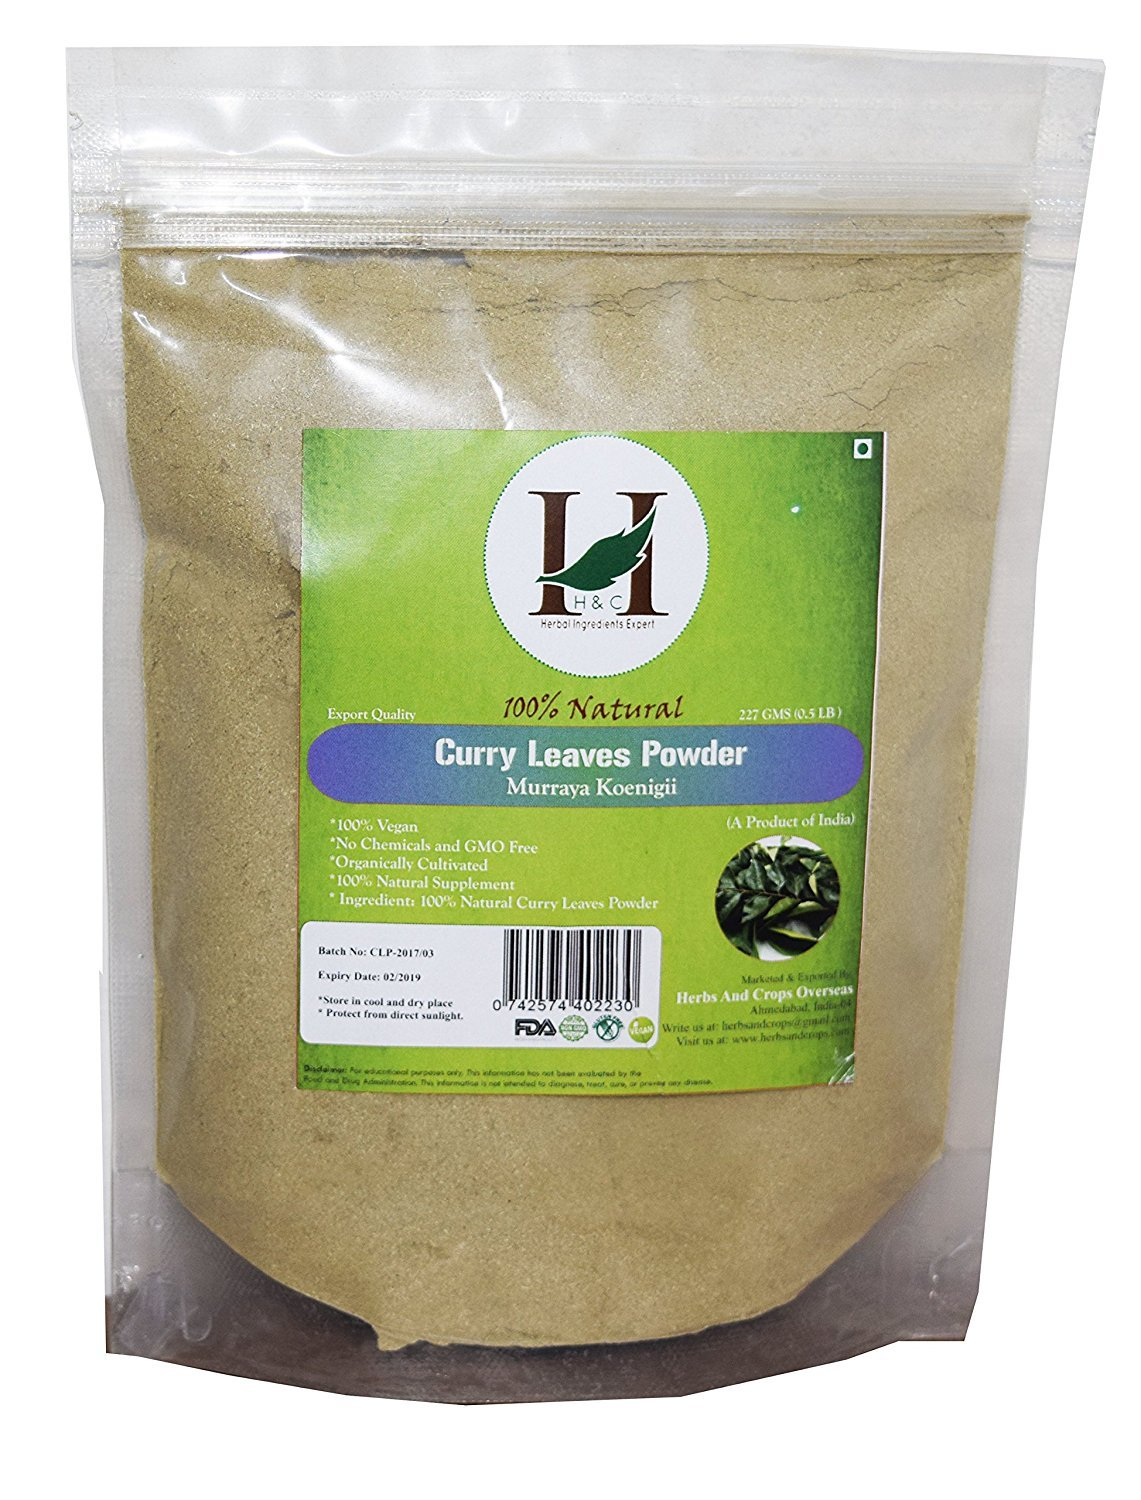 100% Natural Curry Leaves Powder- 227g (0.5 LB) for hair care formulation- Known to hair growth benefits